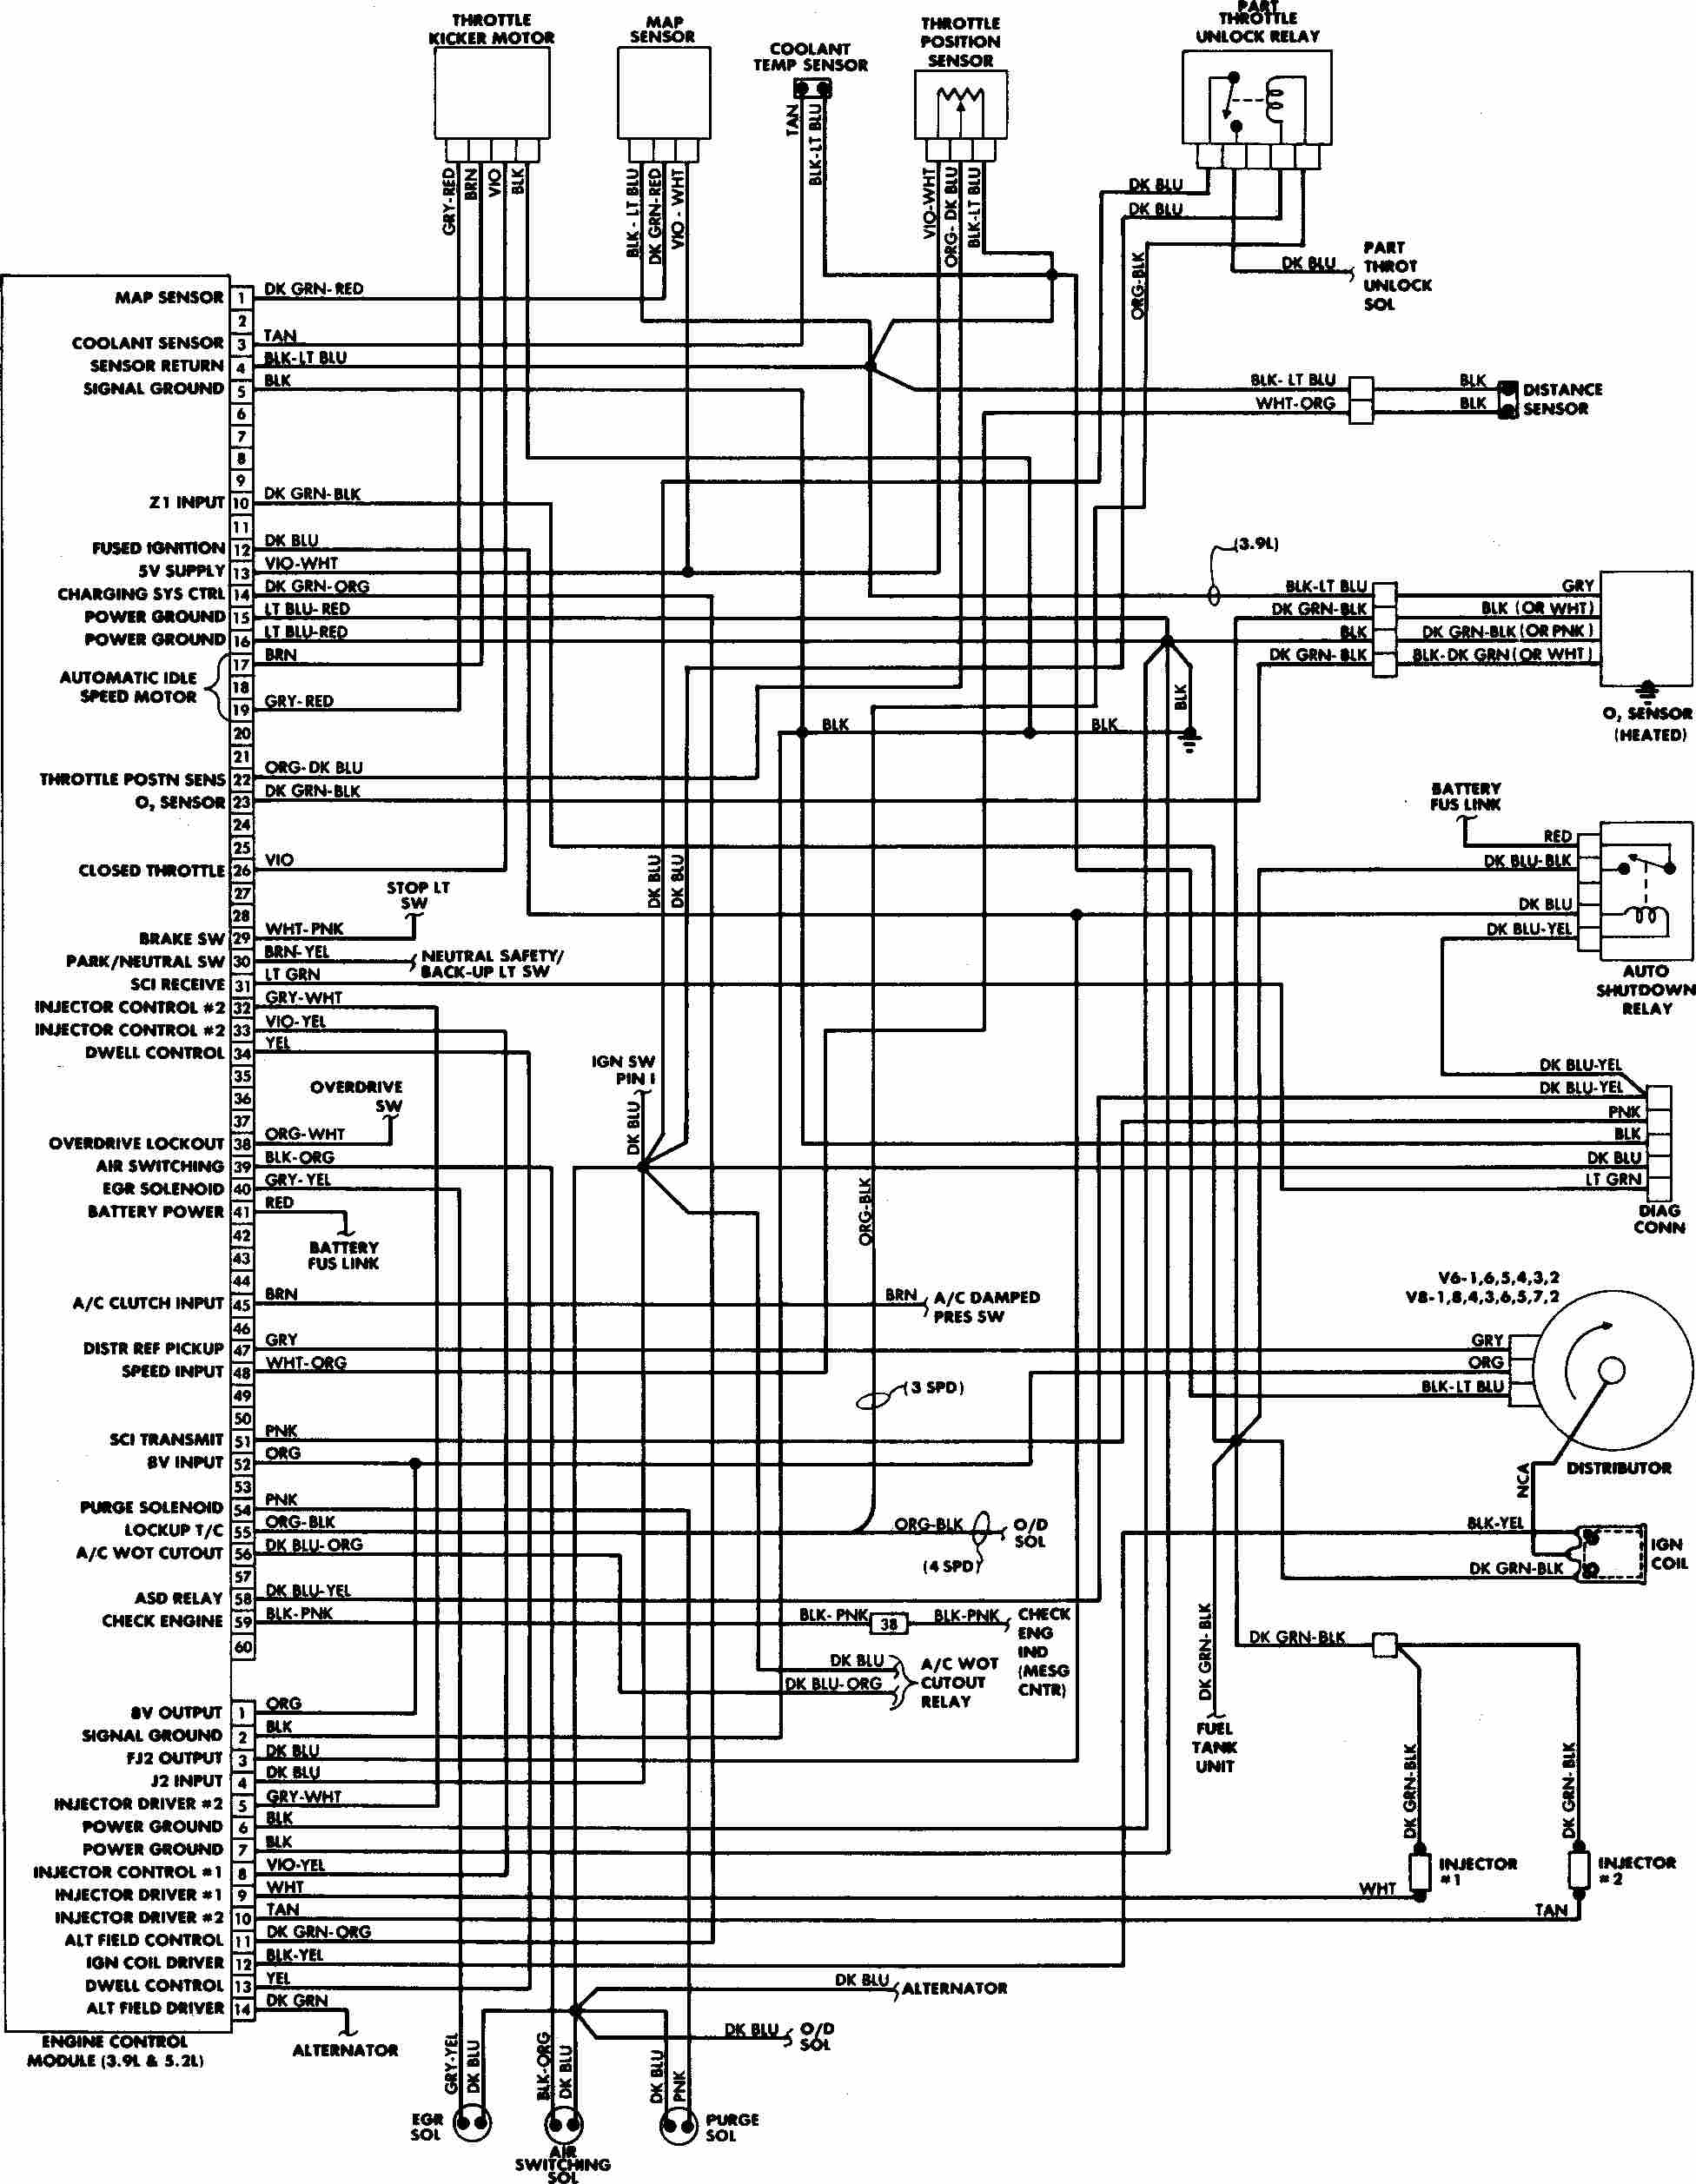 Ibanez 321 Rg Series Wiring Diagram